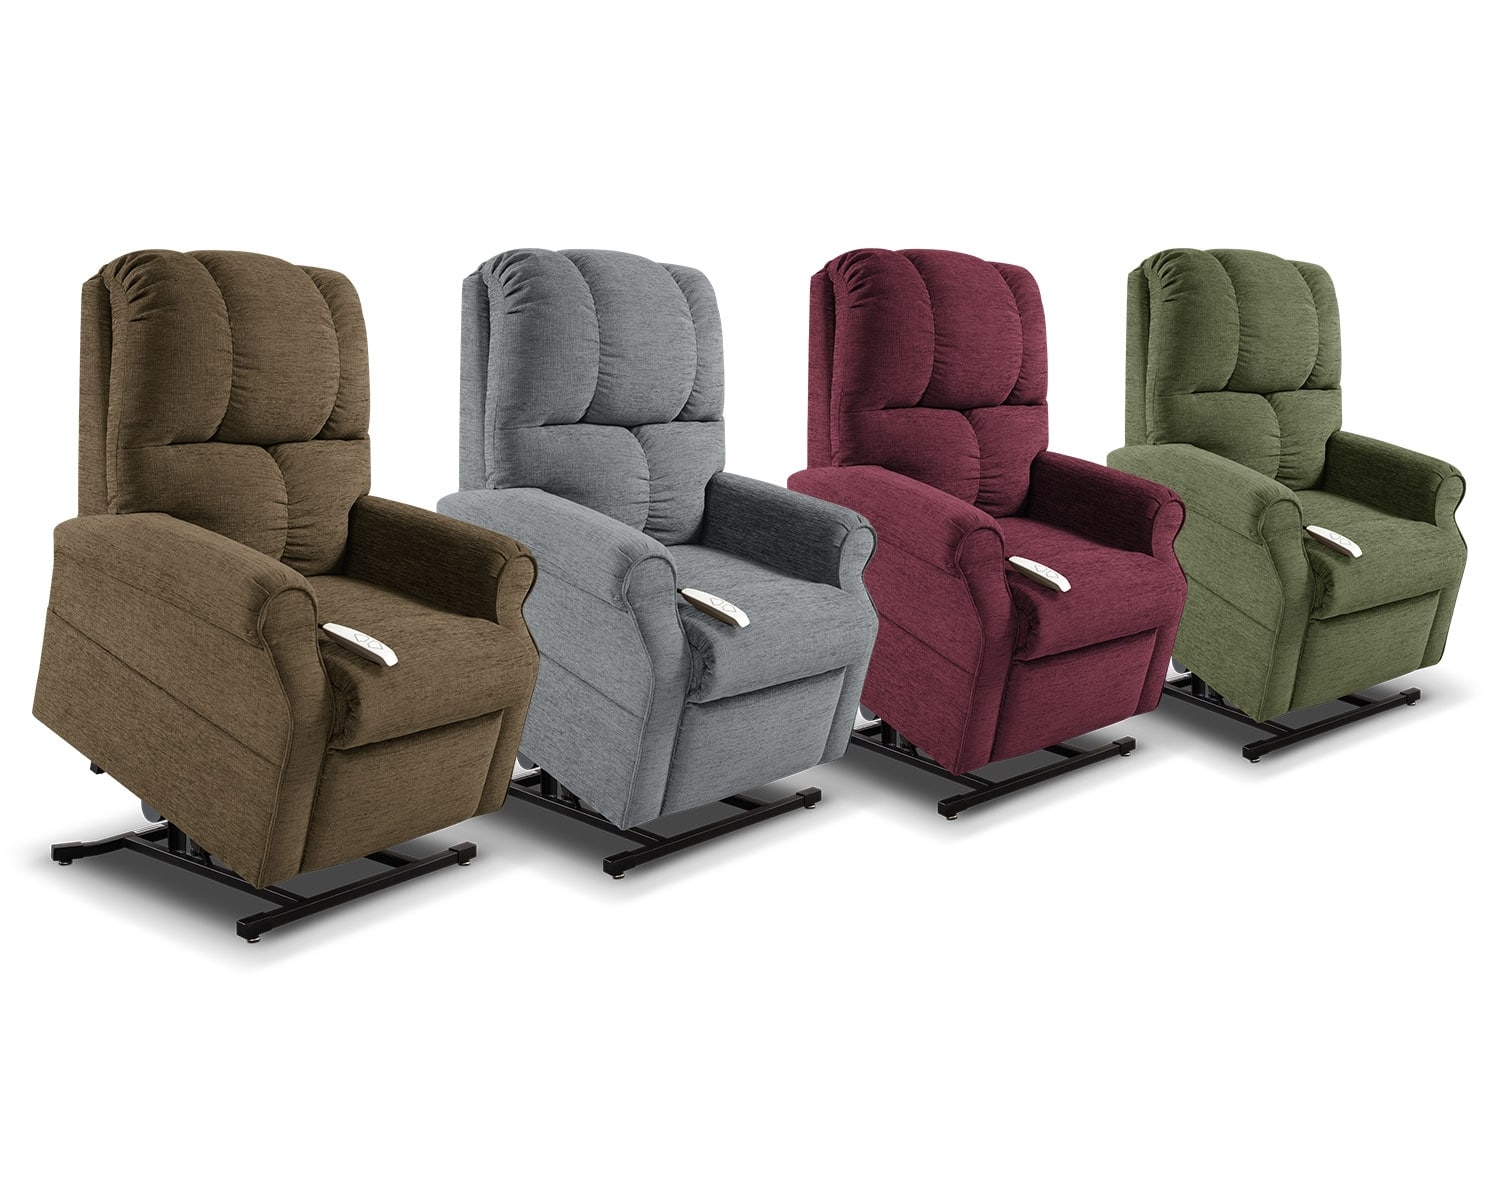 Free Shipping On Select Items Value City Furniture